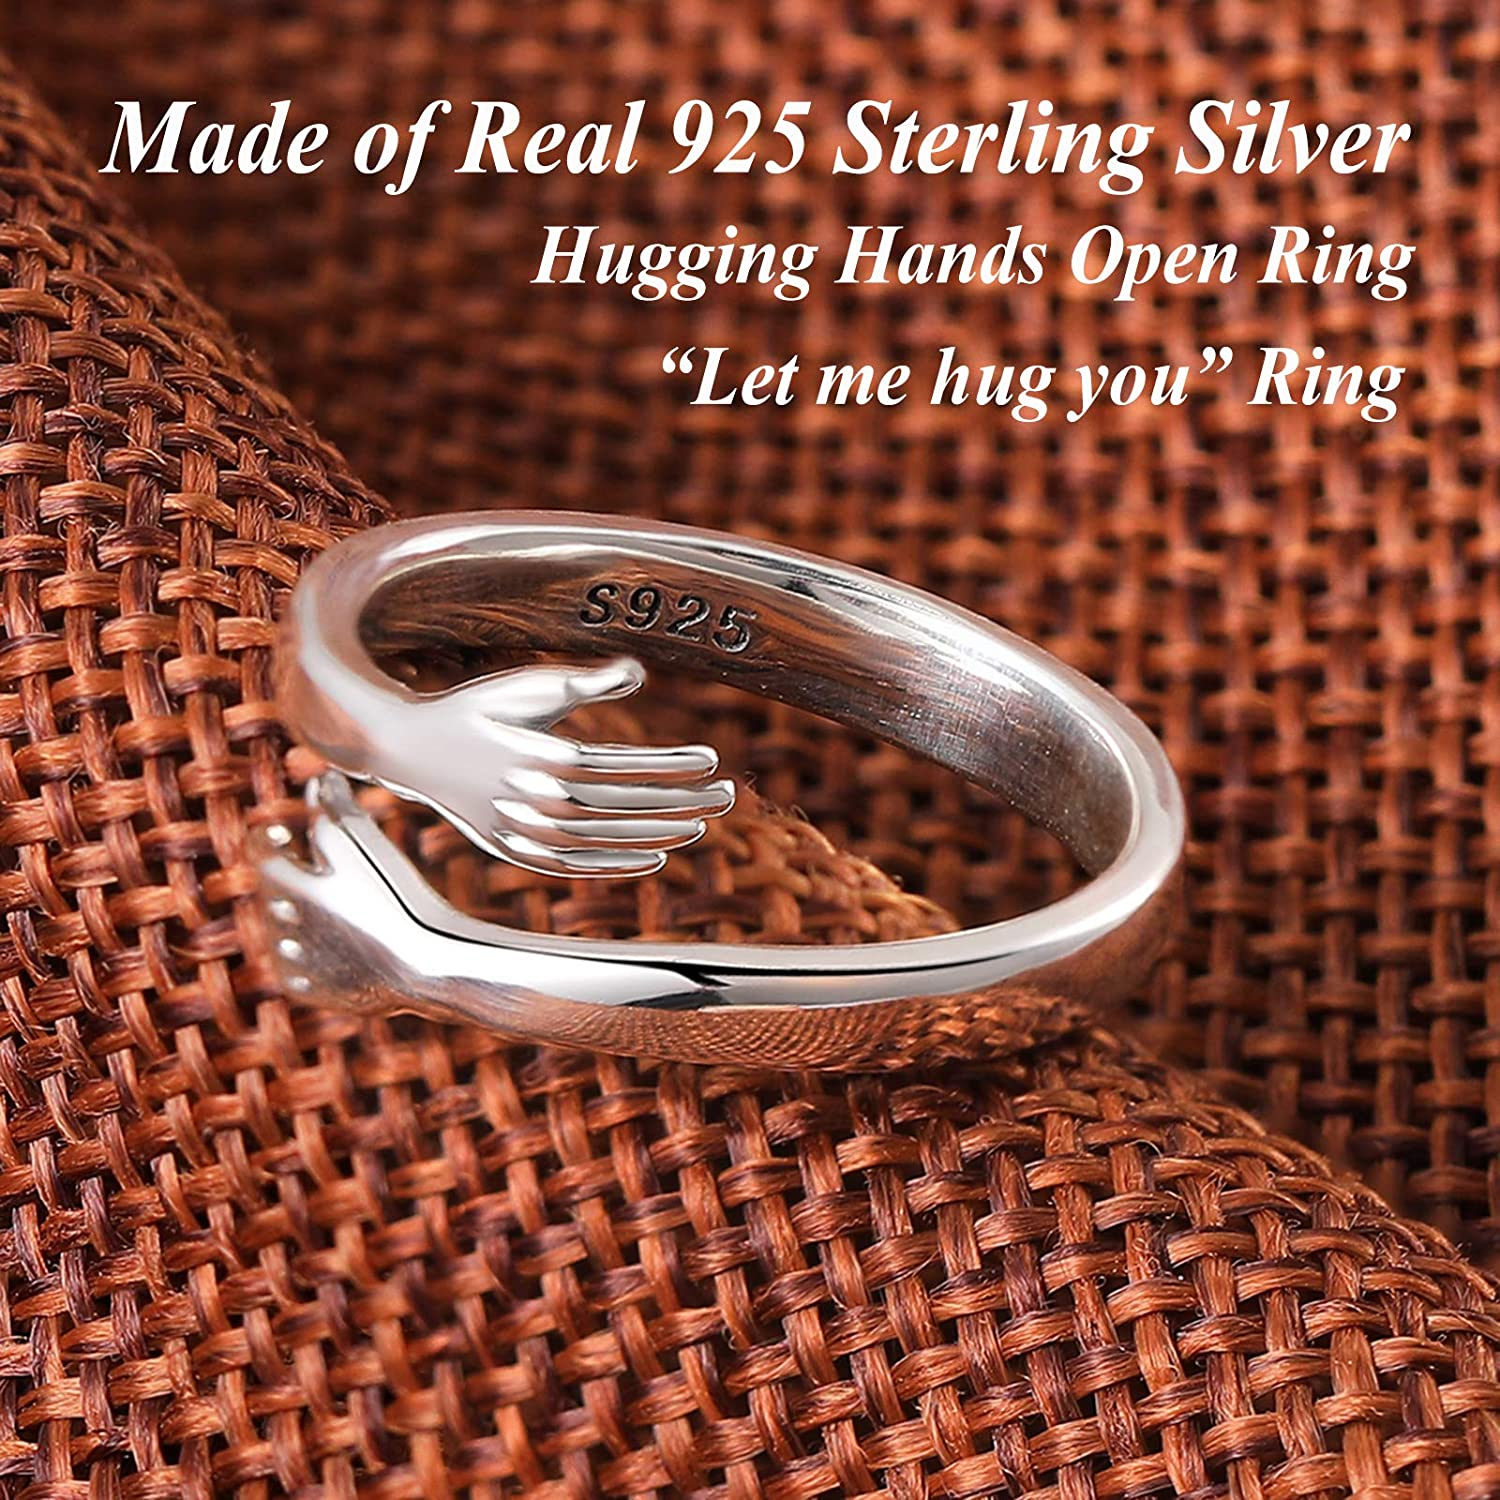 GAGAFEEL 925 Sterling Silver Hug Rings for Women Men Hugging Hands Open Ring Wedding Bands Boy Girl Stacking Ring Xmas Birthday Valentines with Jewelry Gift Box